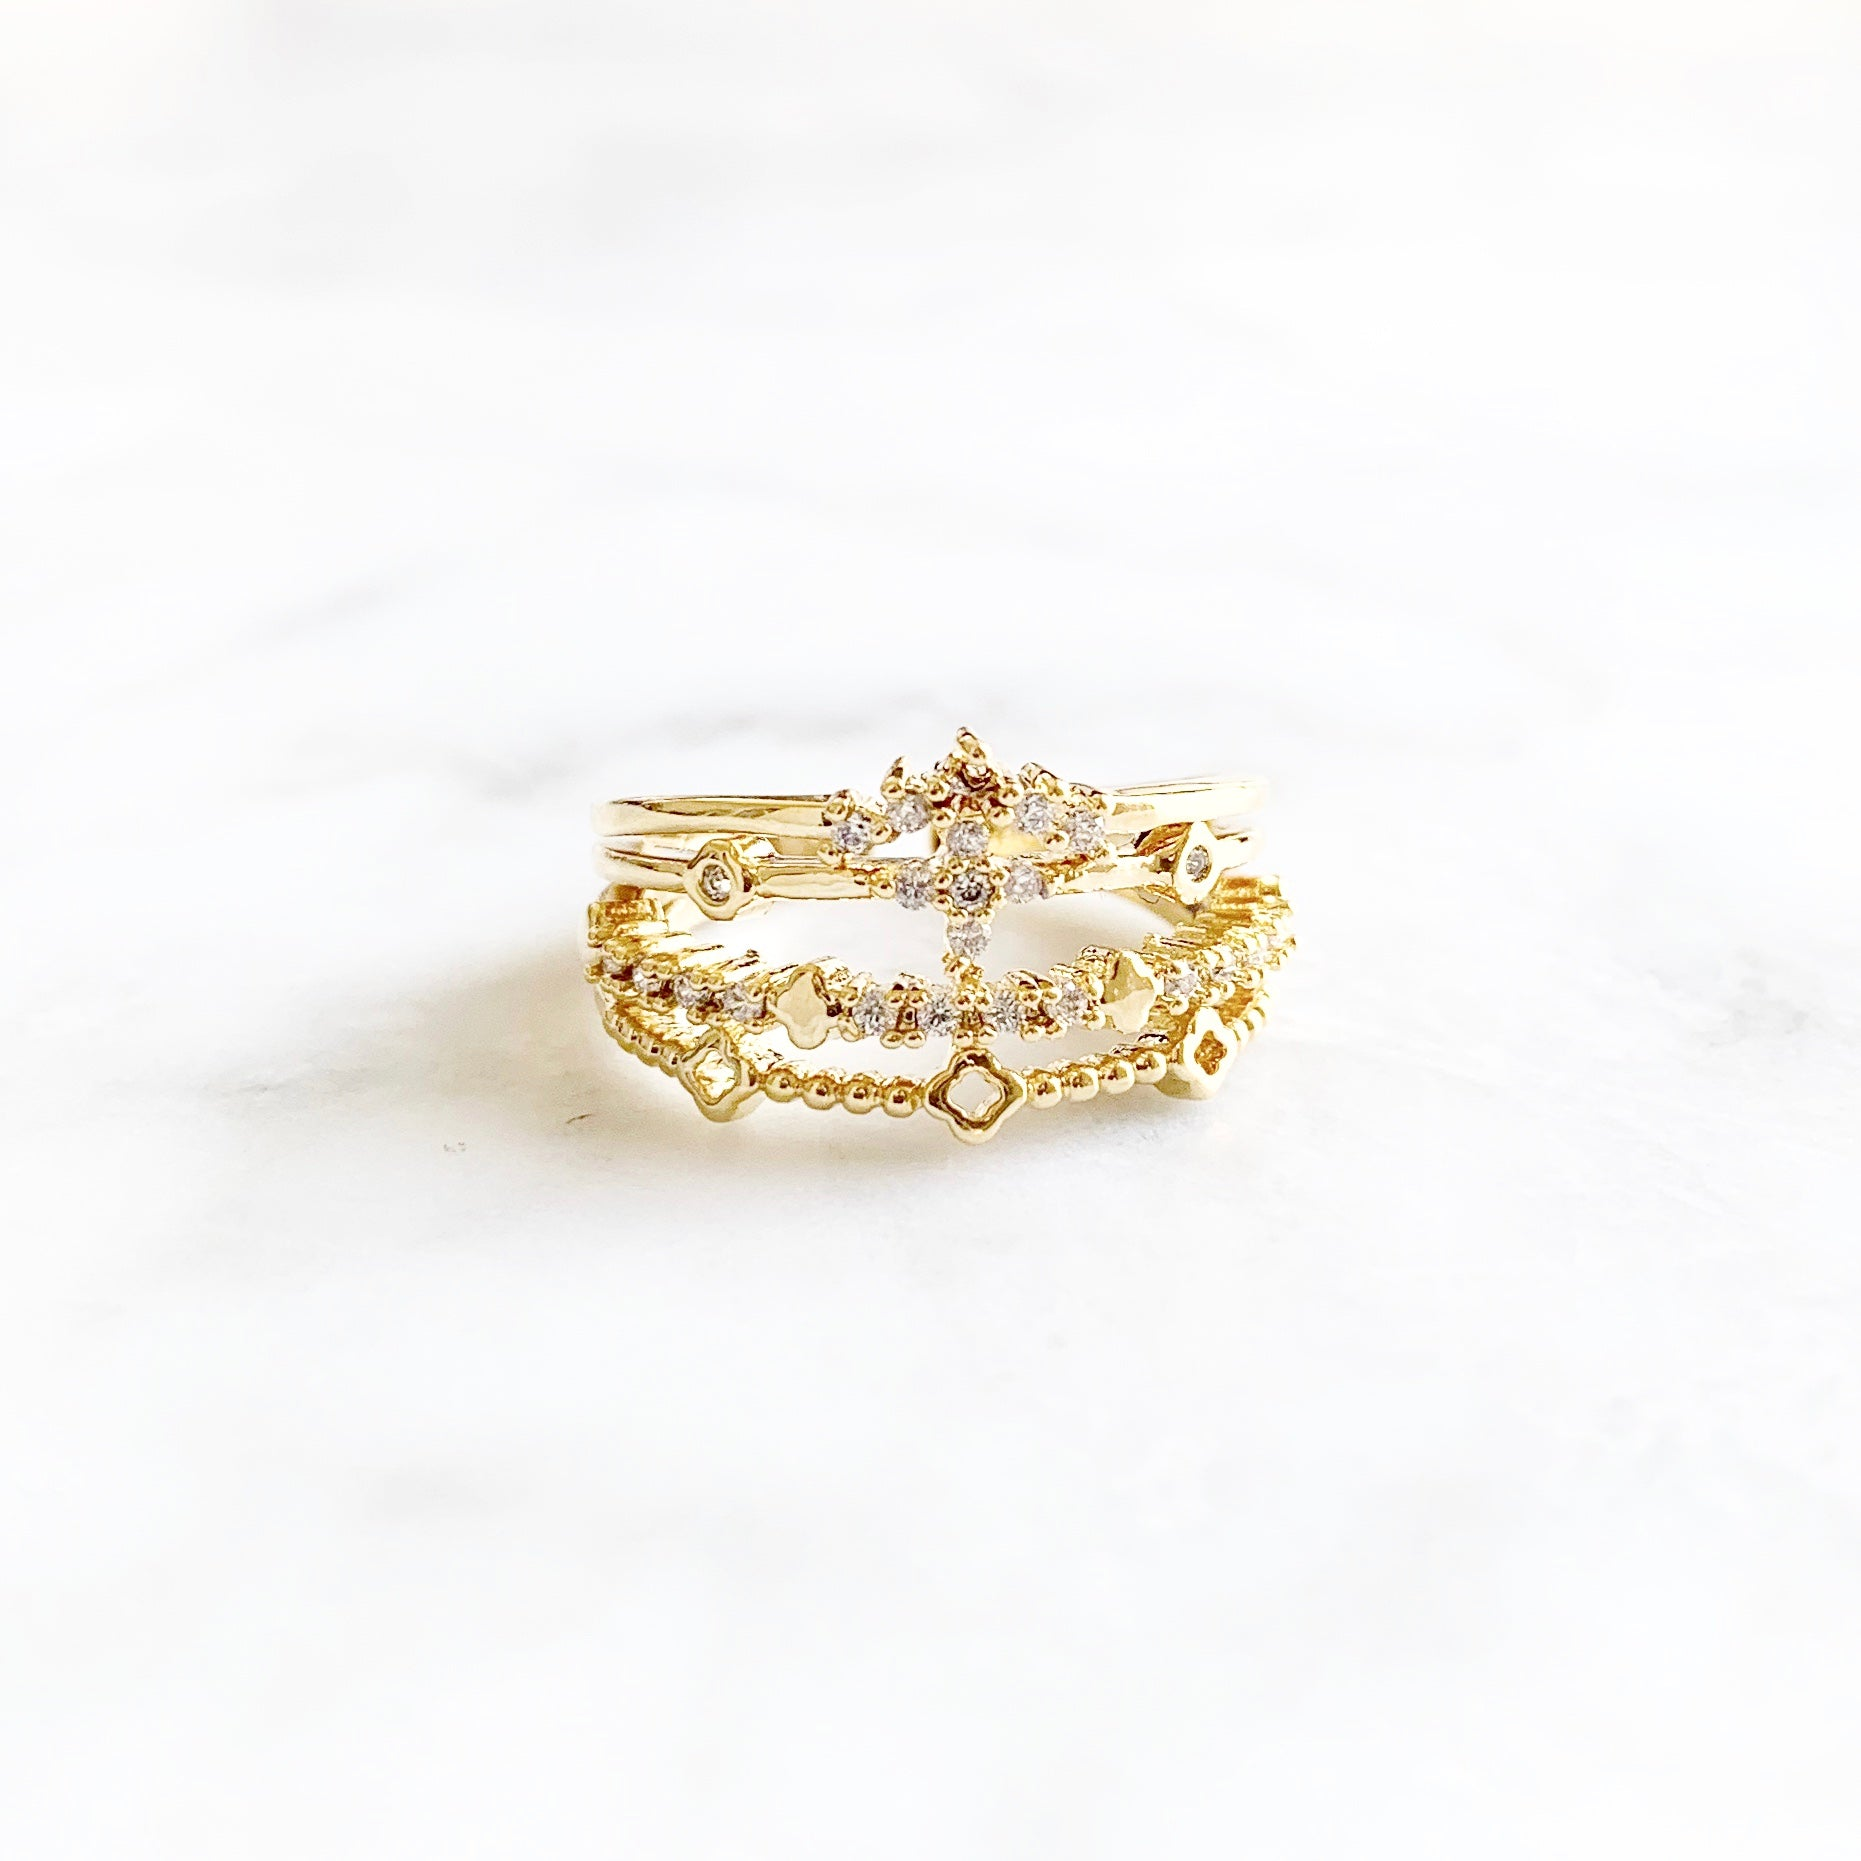 Florence Ornate Ring